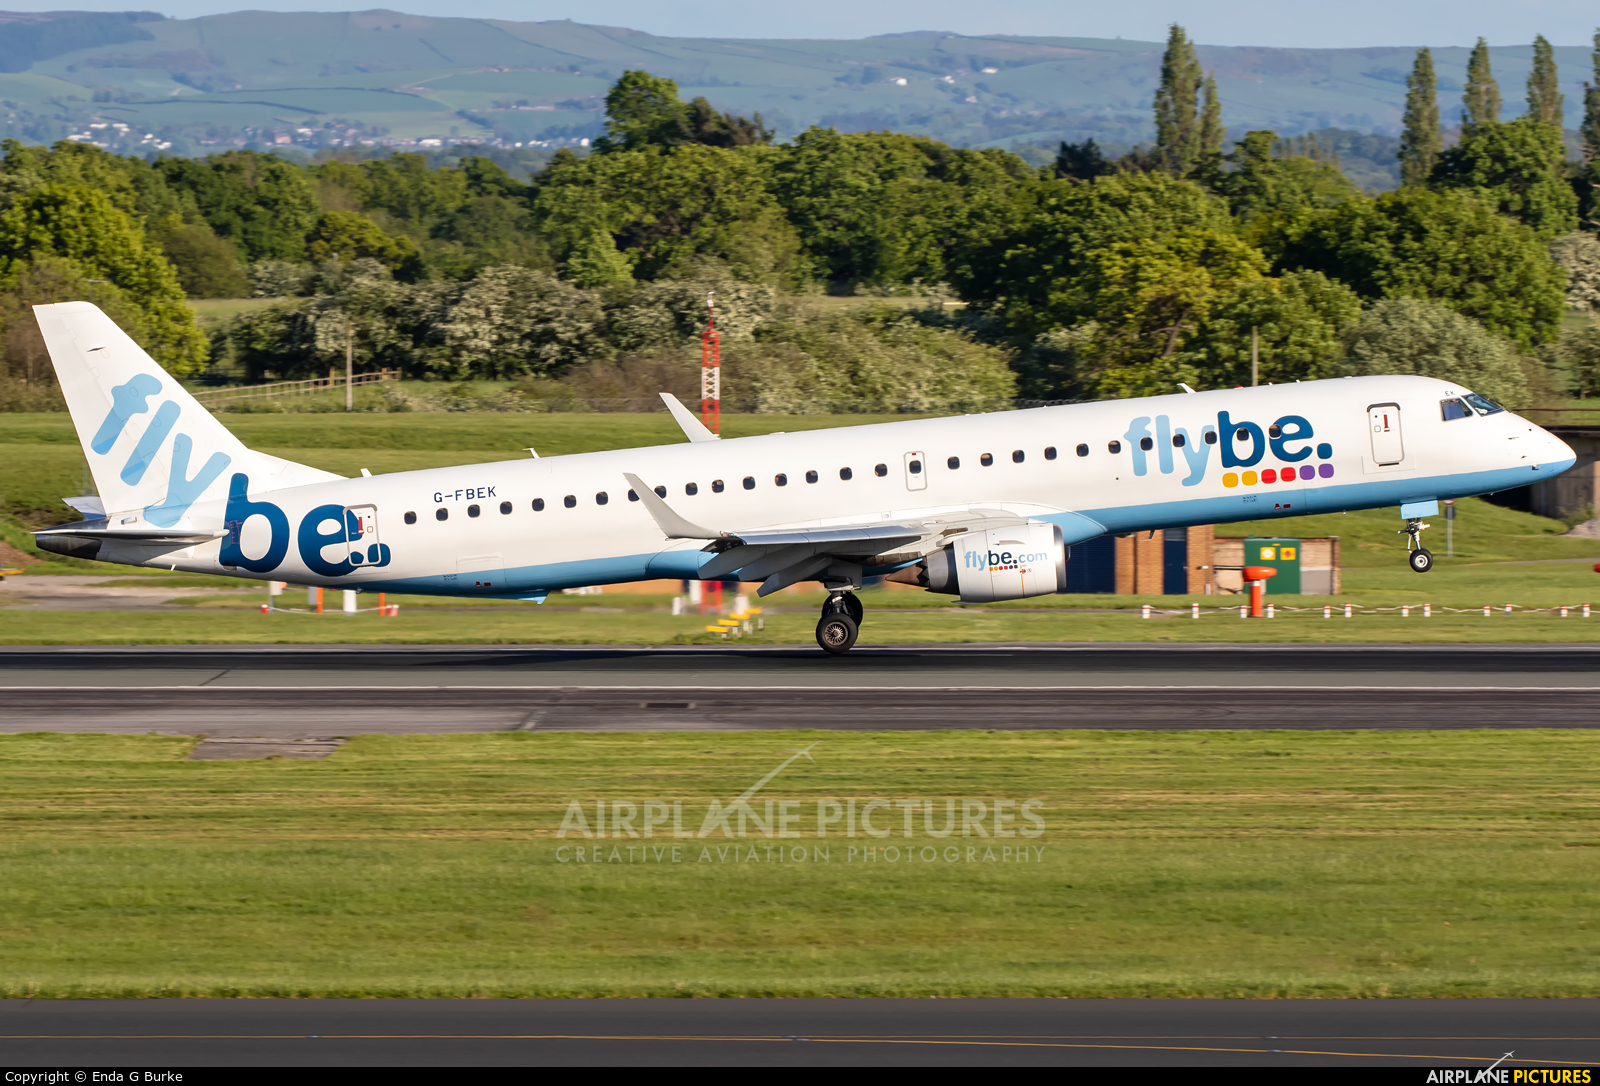 Flybe G-FBEK aircraft at Manchester